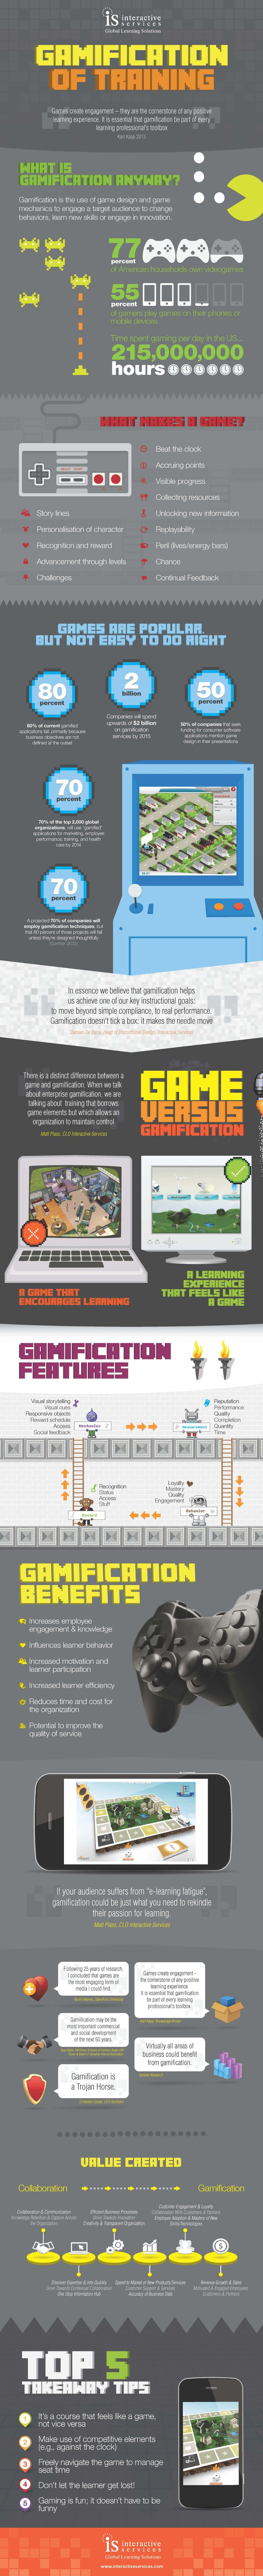 Gamification of Training Infographic - http://elearninginfographics.com/gamification-training-infographic/